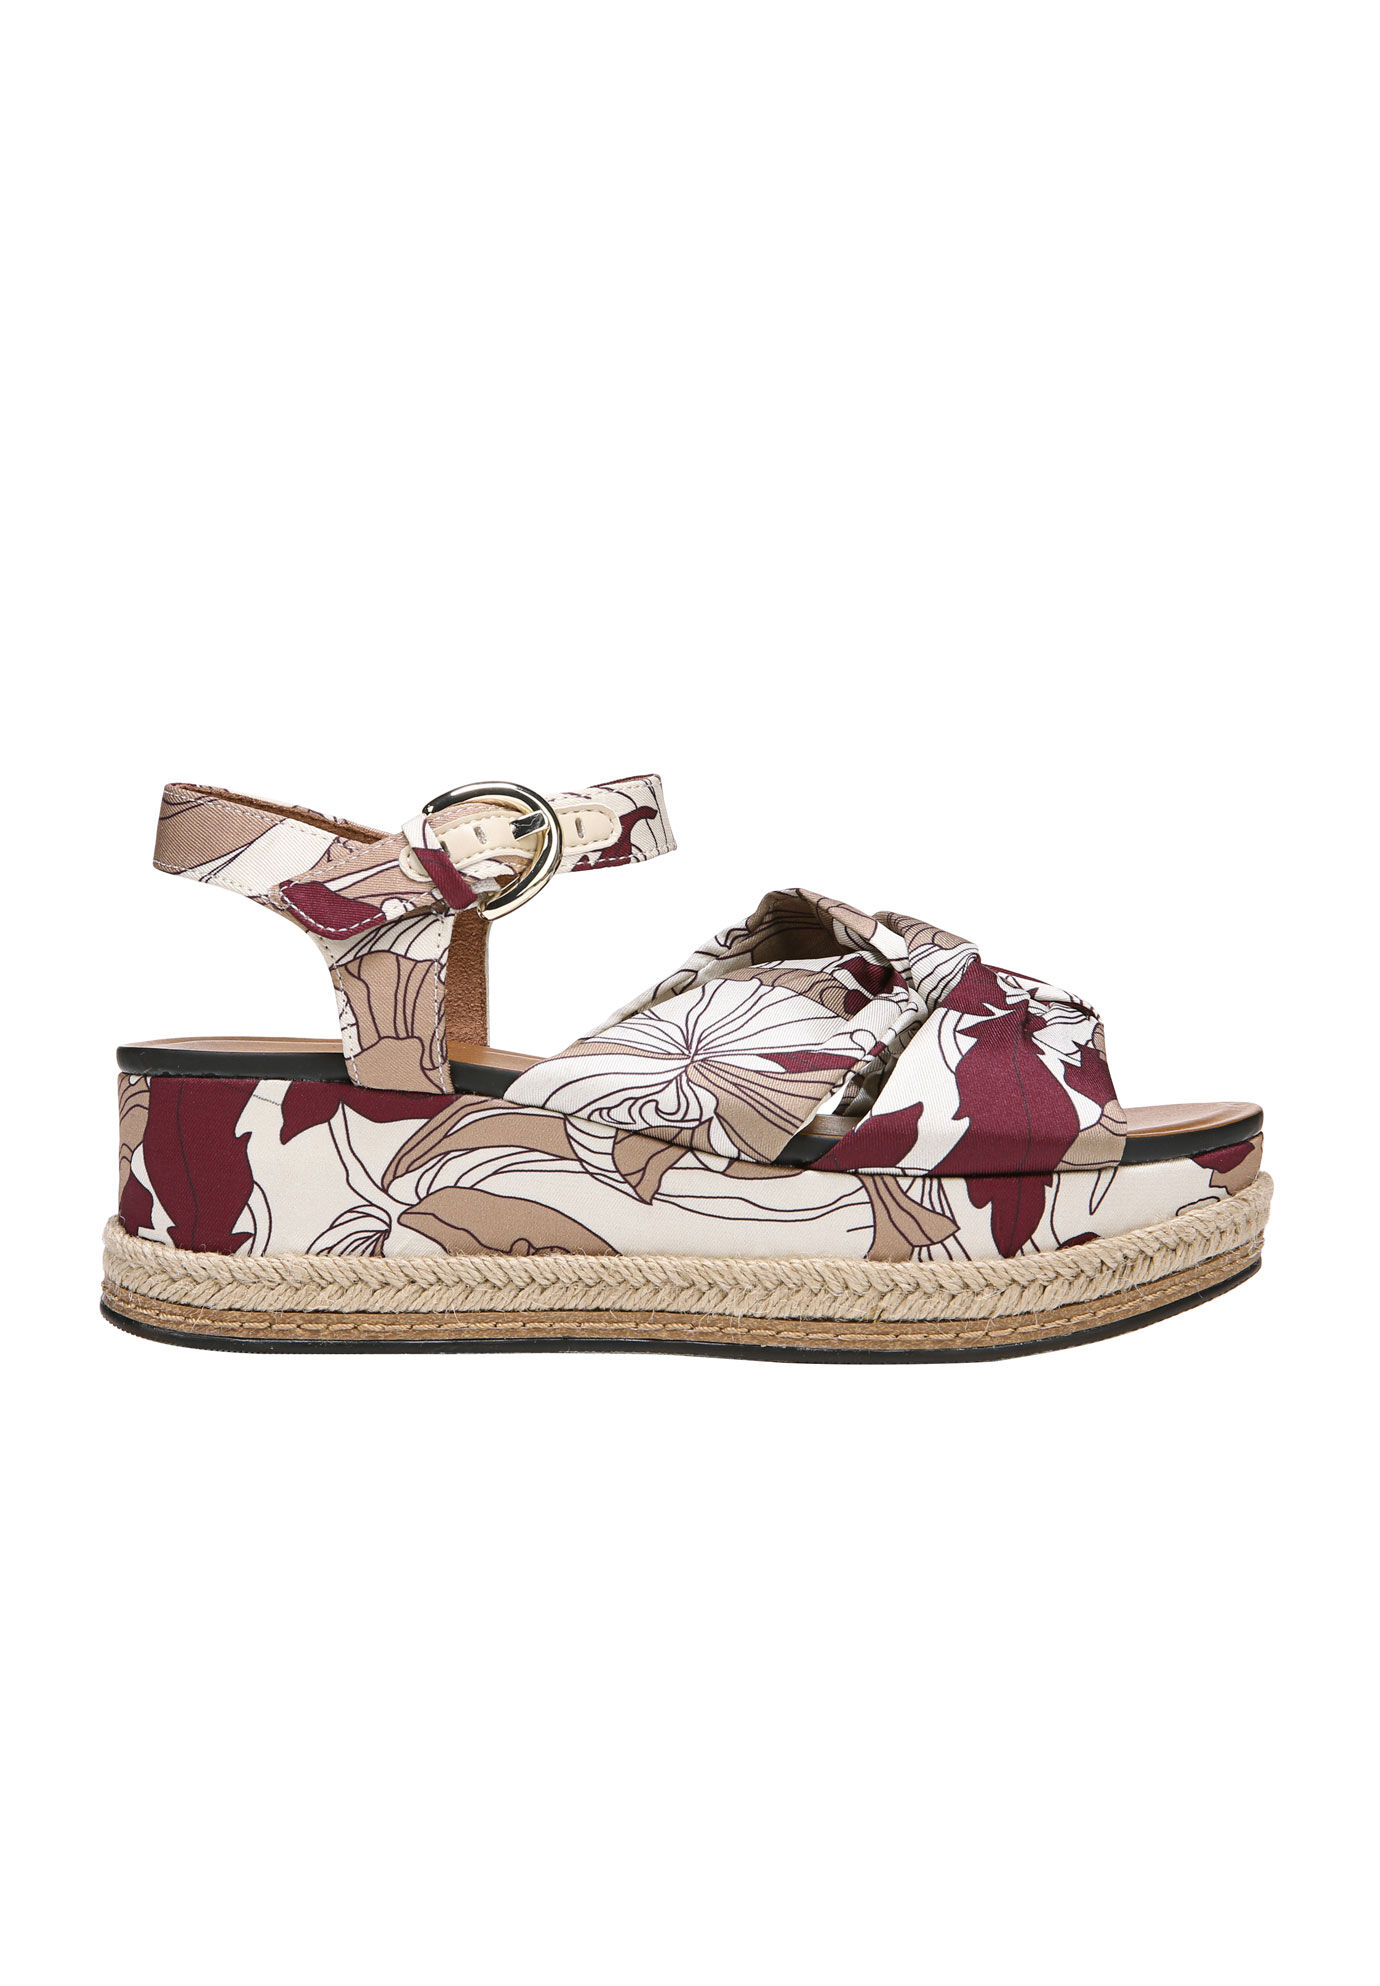 Berry Sandals by Naturalizer®   Woman